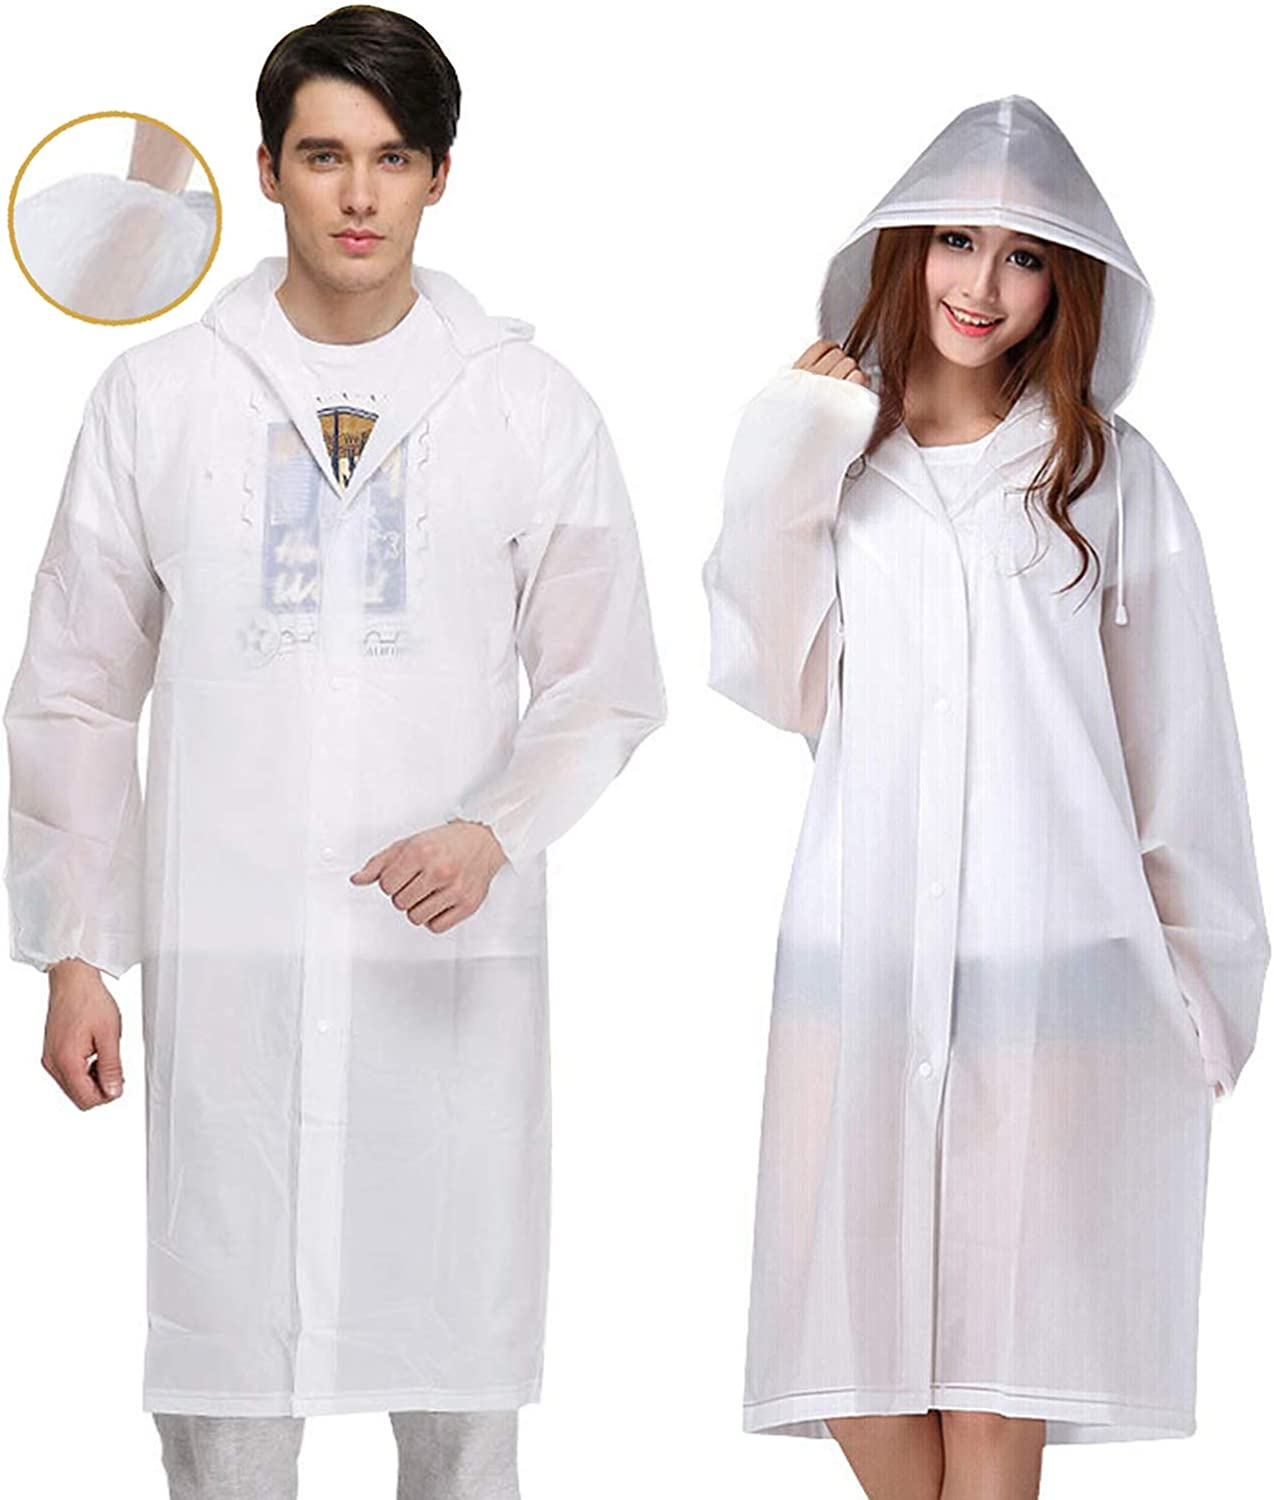 Details about  /RHUTQP Adult Portable Raincoat Rain Poncho with Hoods and Sleeves